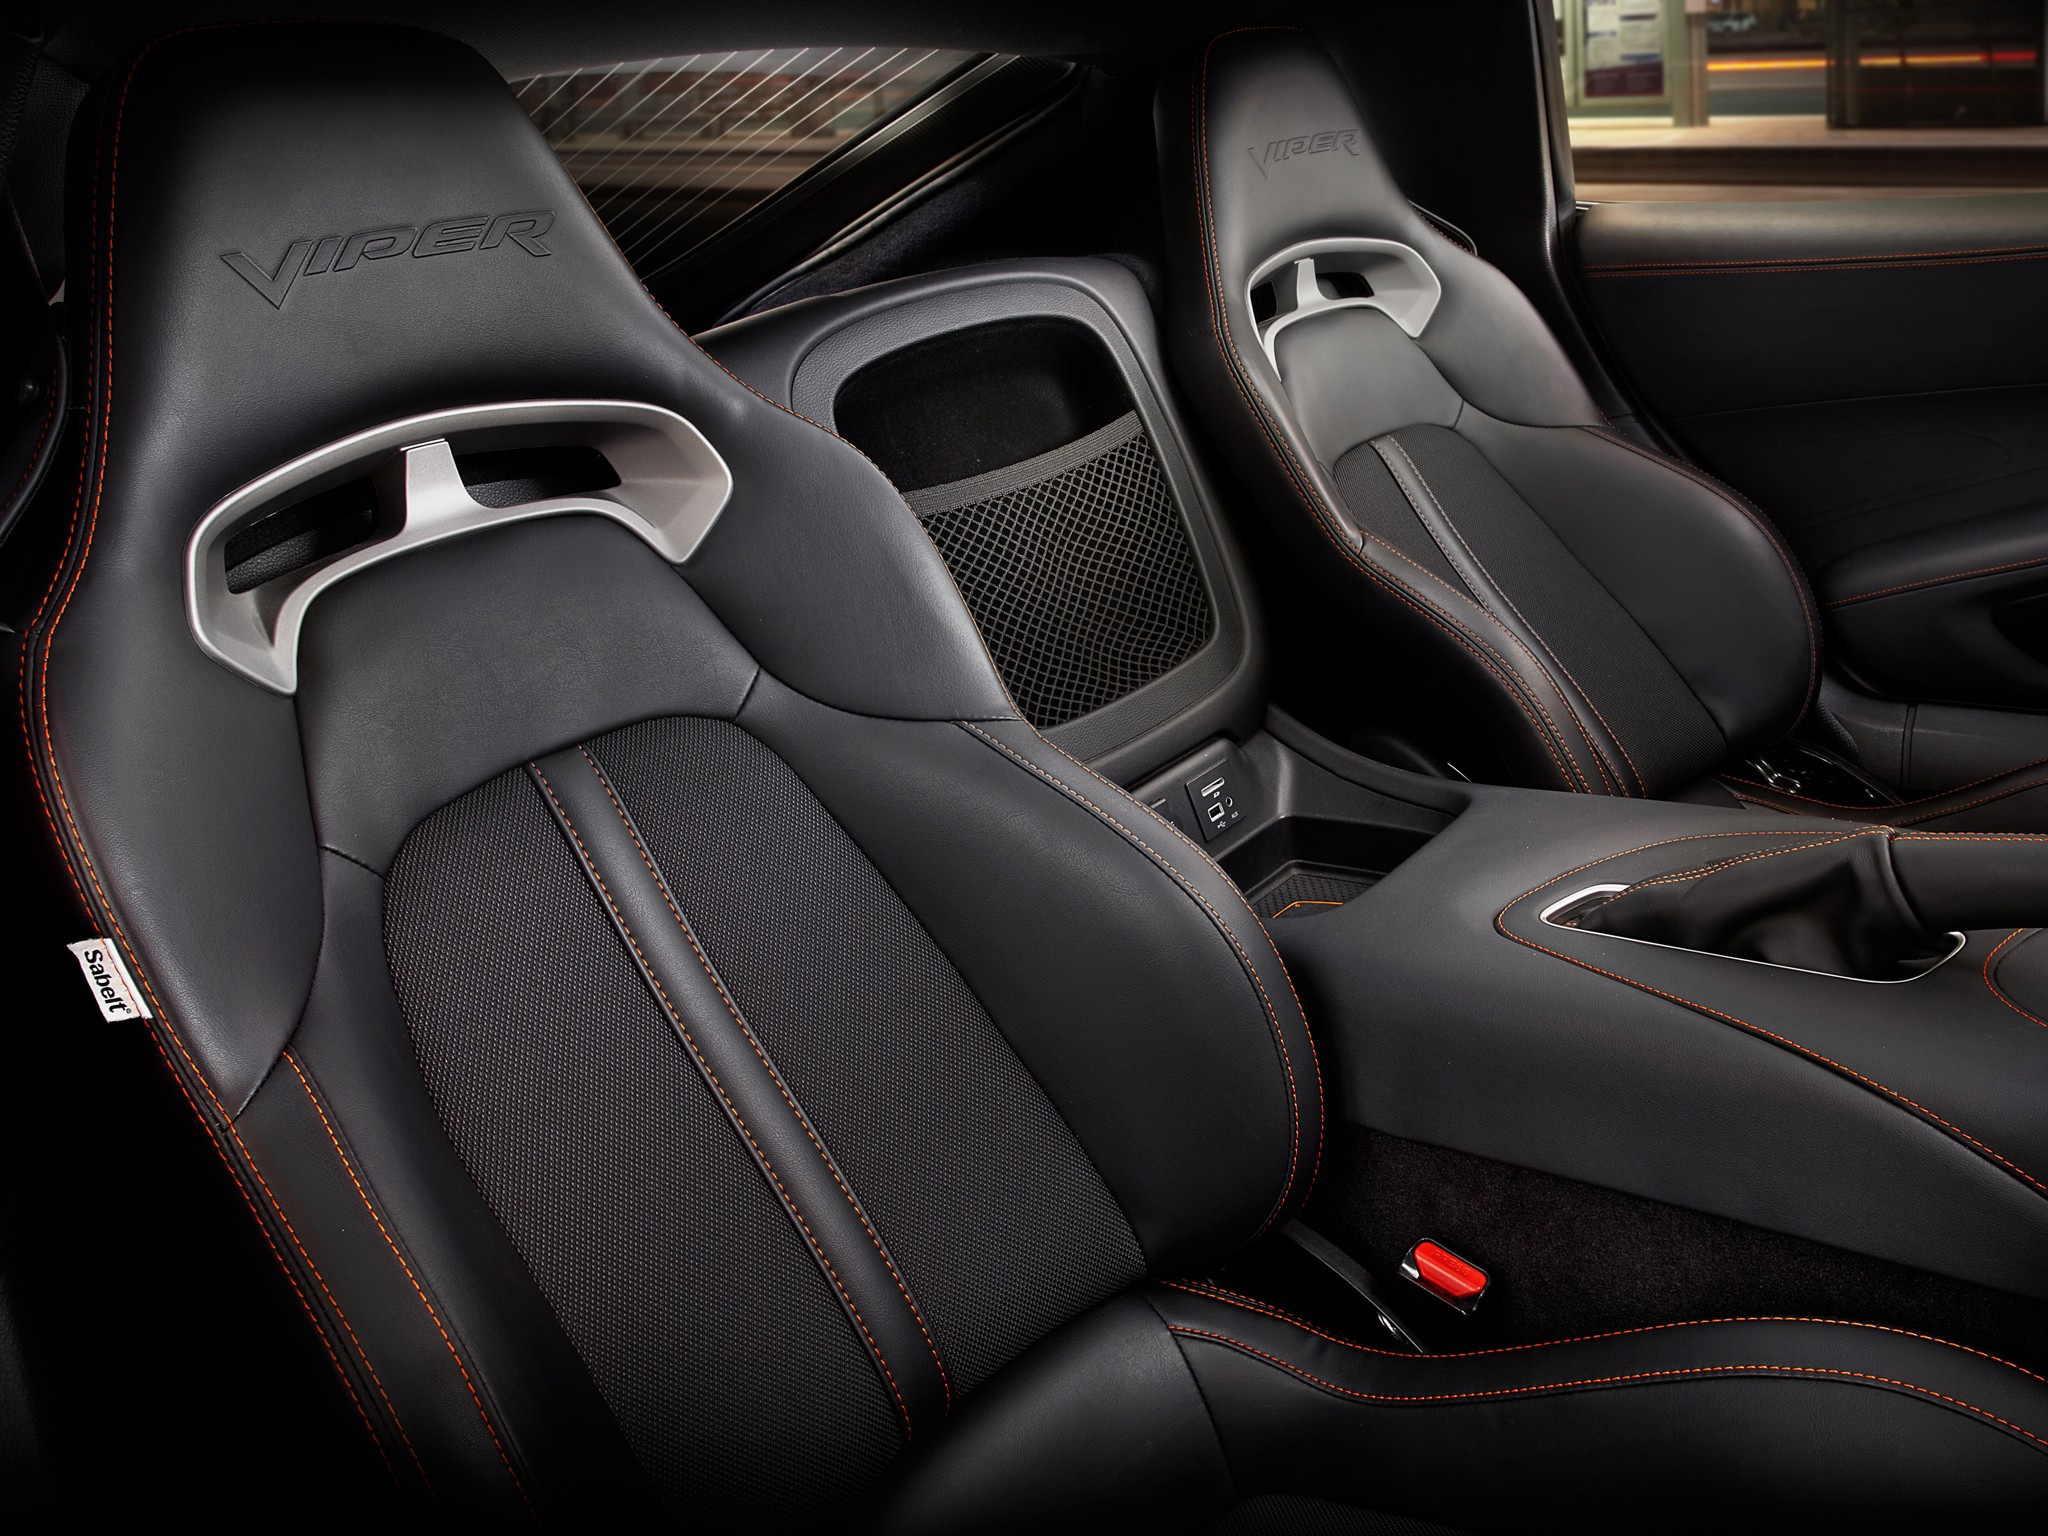 Dodge Viper Coupe 2 Doors 2012 Model Interior  ...